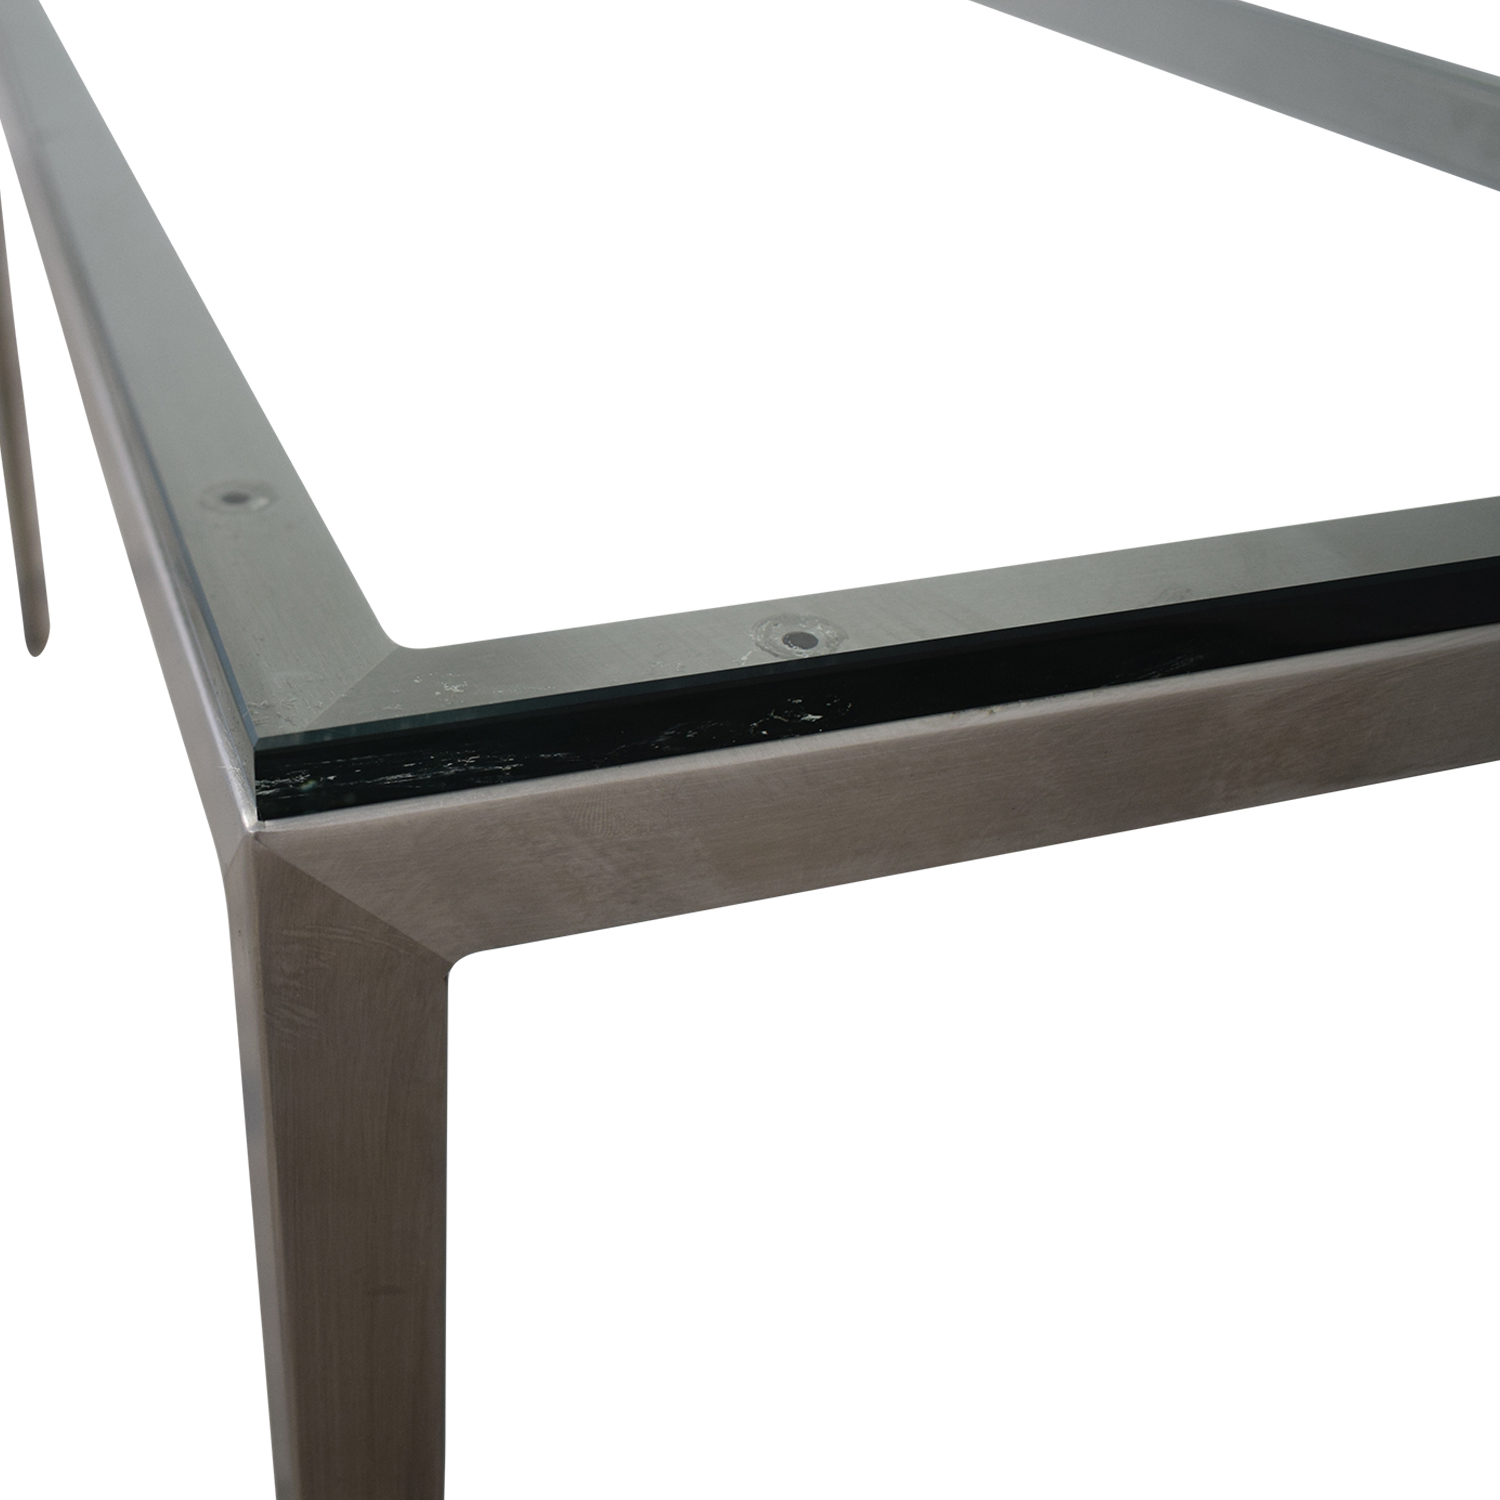 Room & Board Room & Board Portica Console Table dimensions